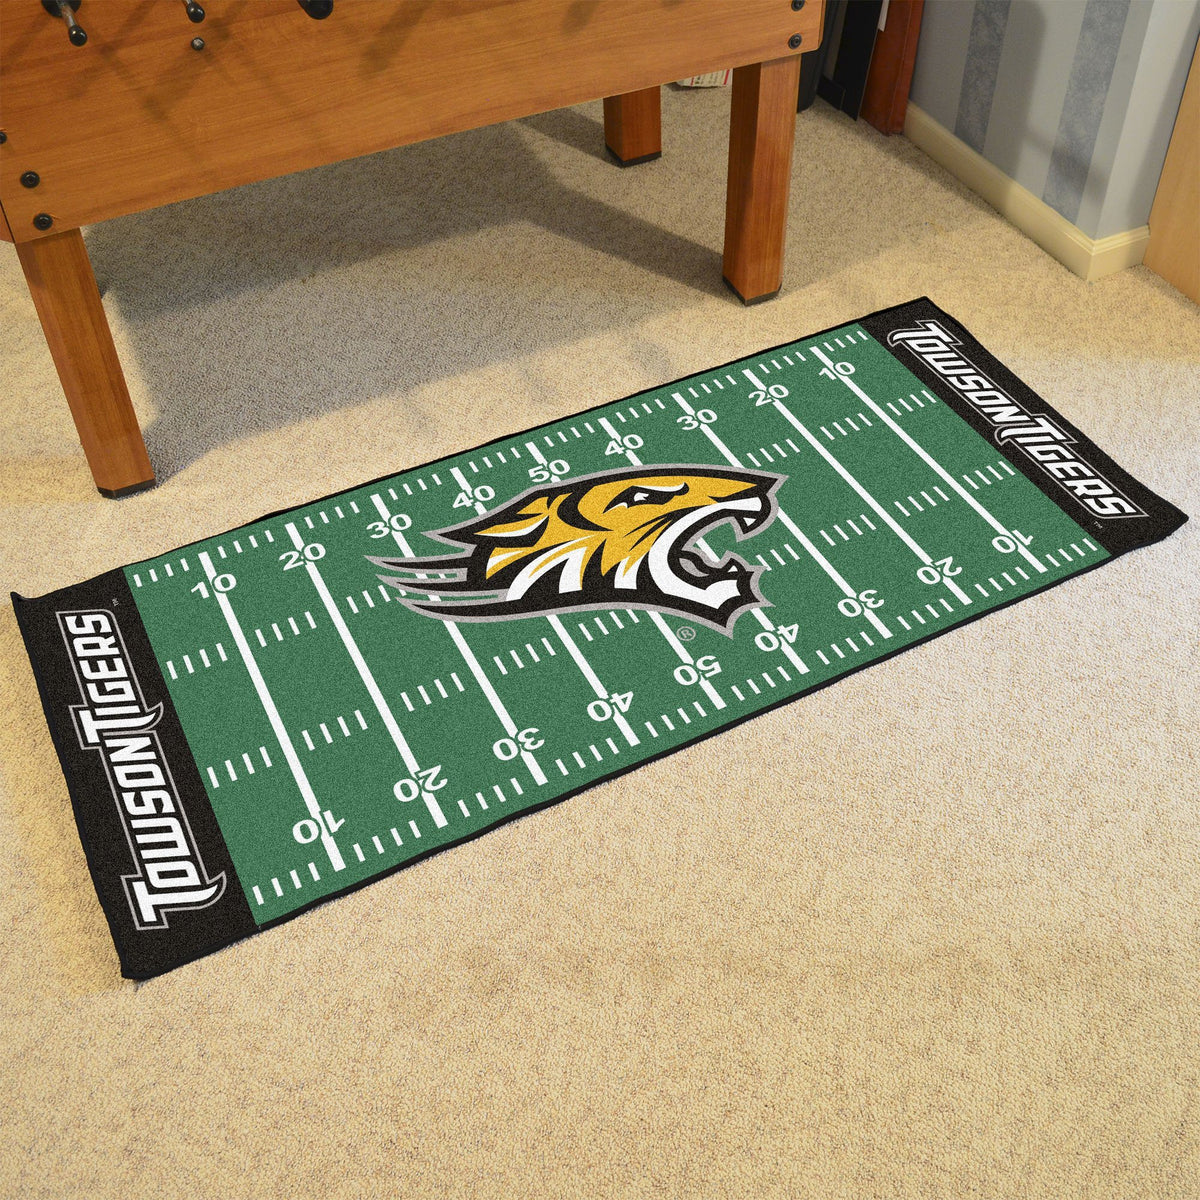 Collegiate - Football Field Runner Collegiate Mats, Rectangular Mats, Football Field Runner, Collegiate, Home Fan Mats Towson